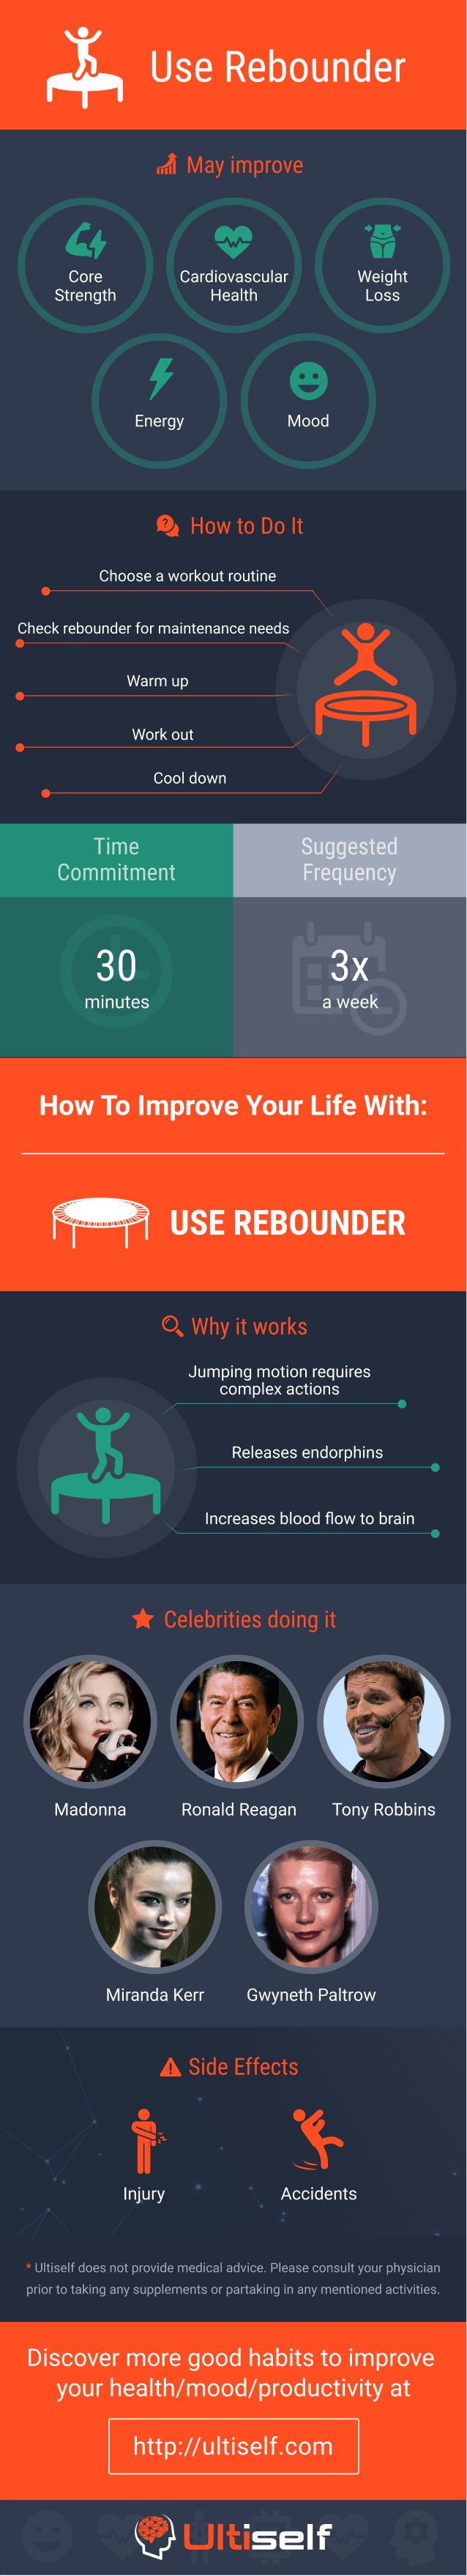 Use rebounder infographic